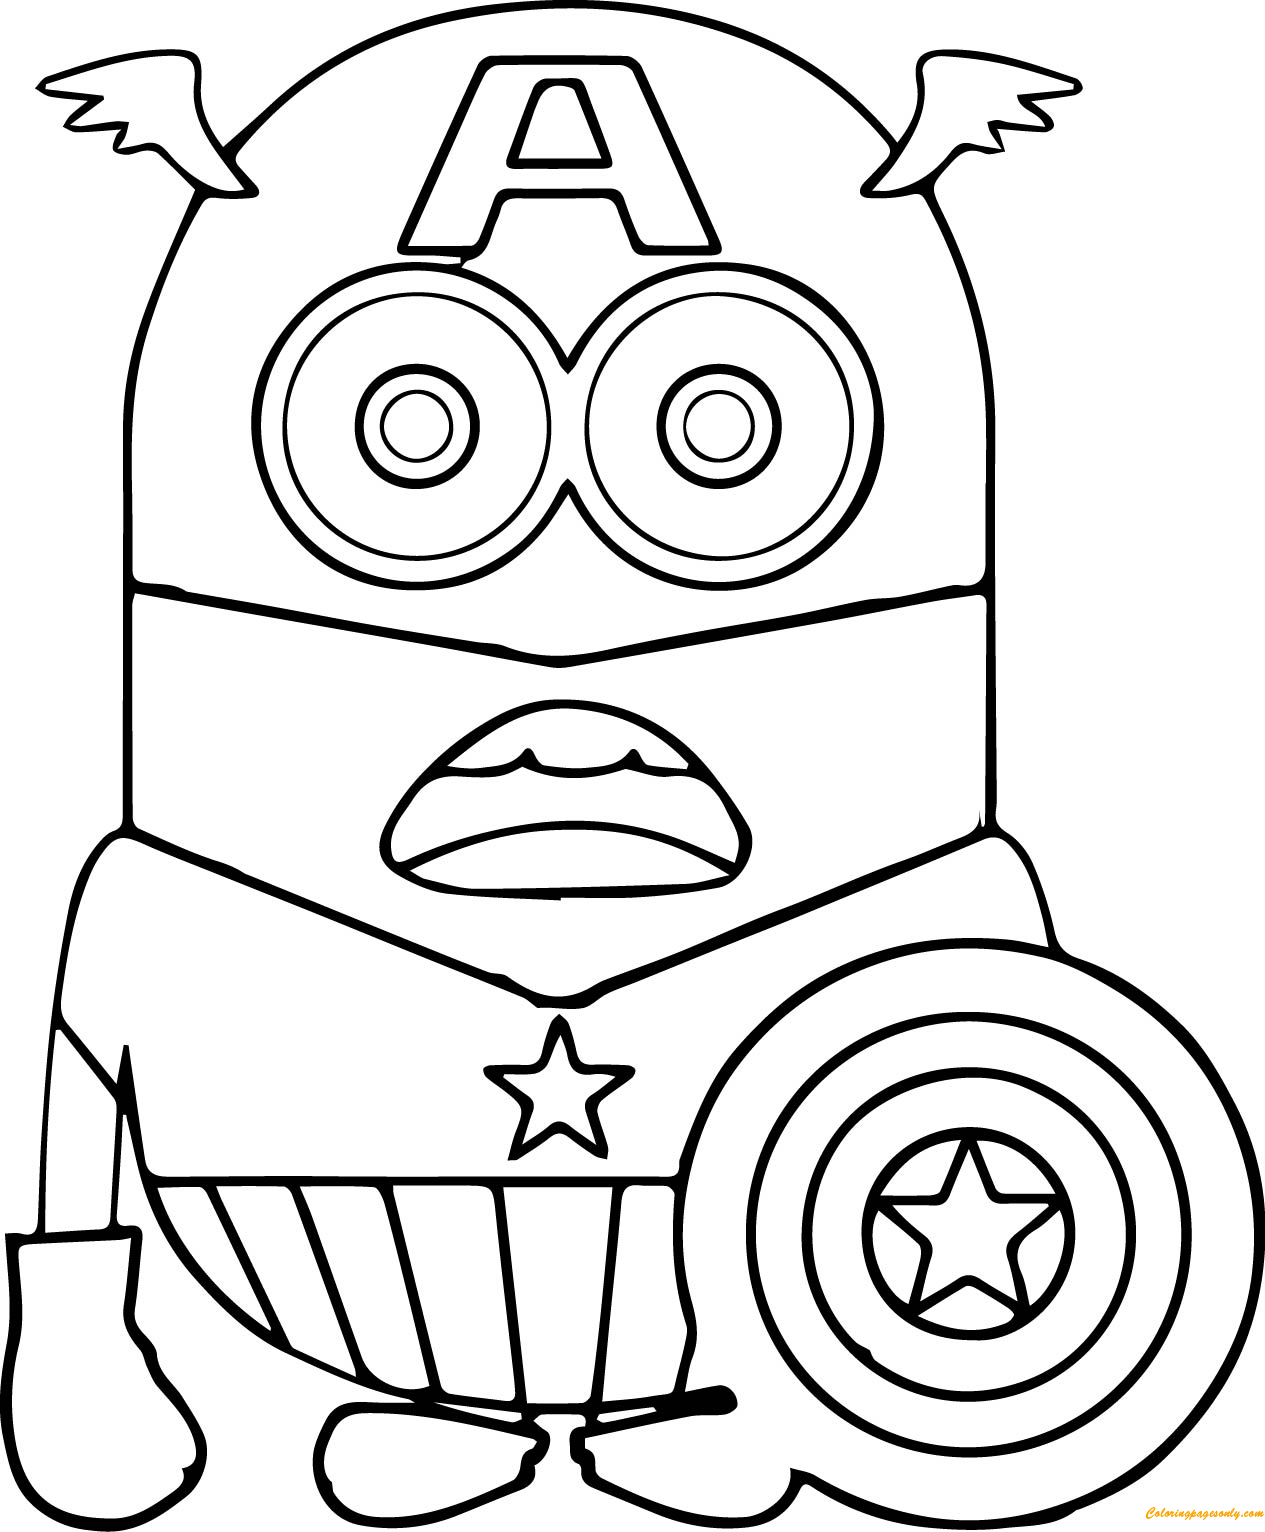 Minion Dave Coloring Page Free Coloring Pages Online